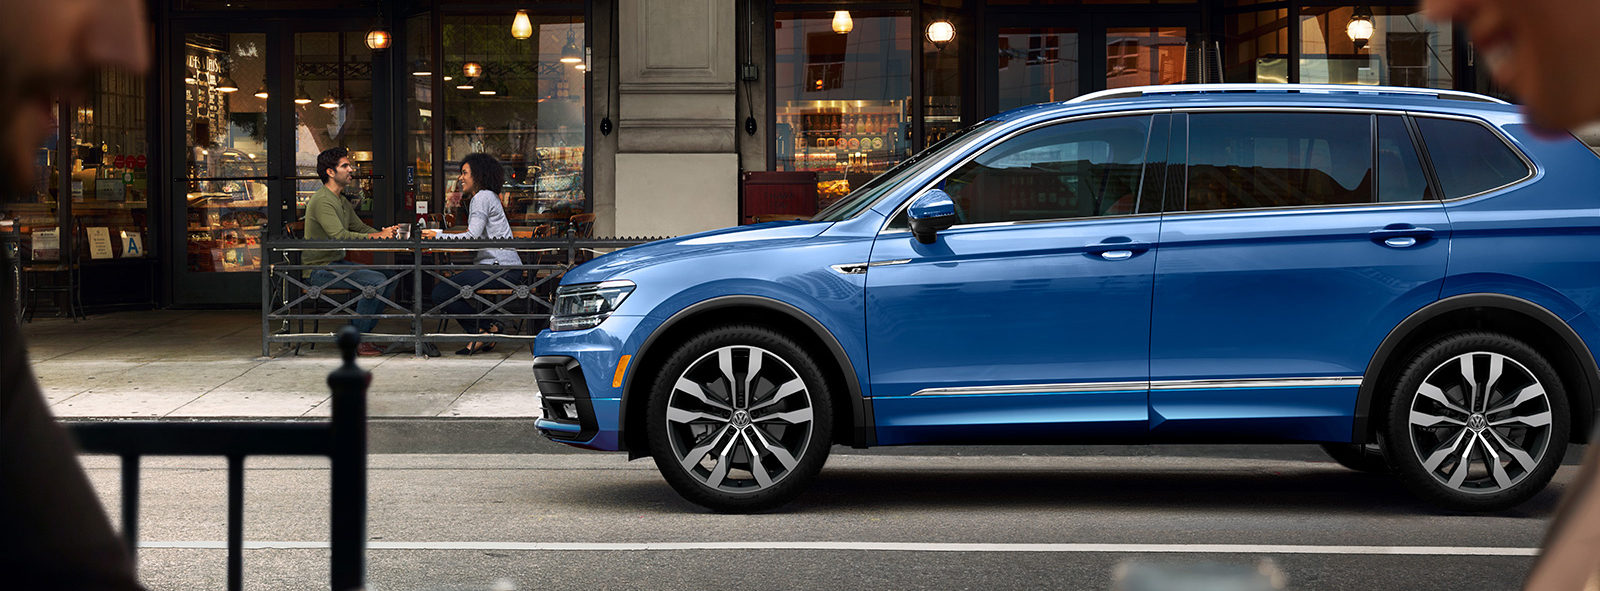 blue 2020 volkswagen tiguan parked on a street in front of a restaurant